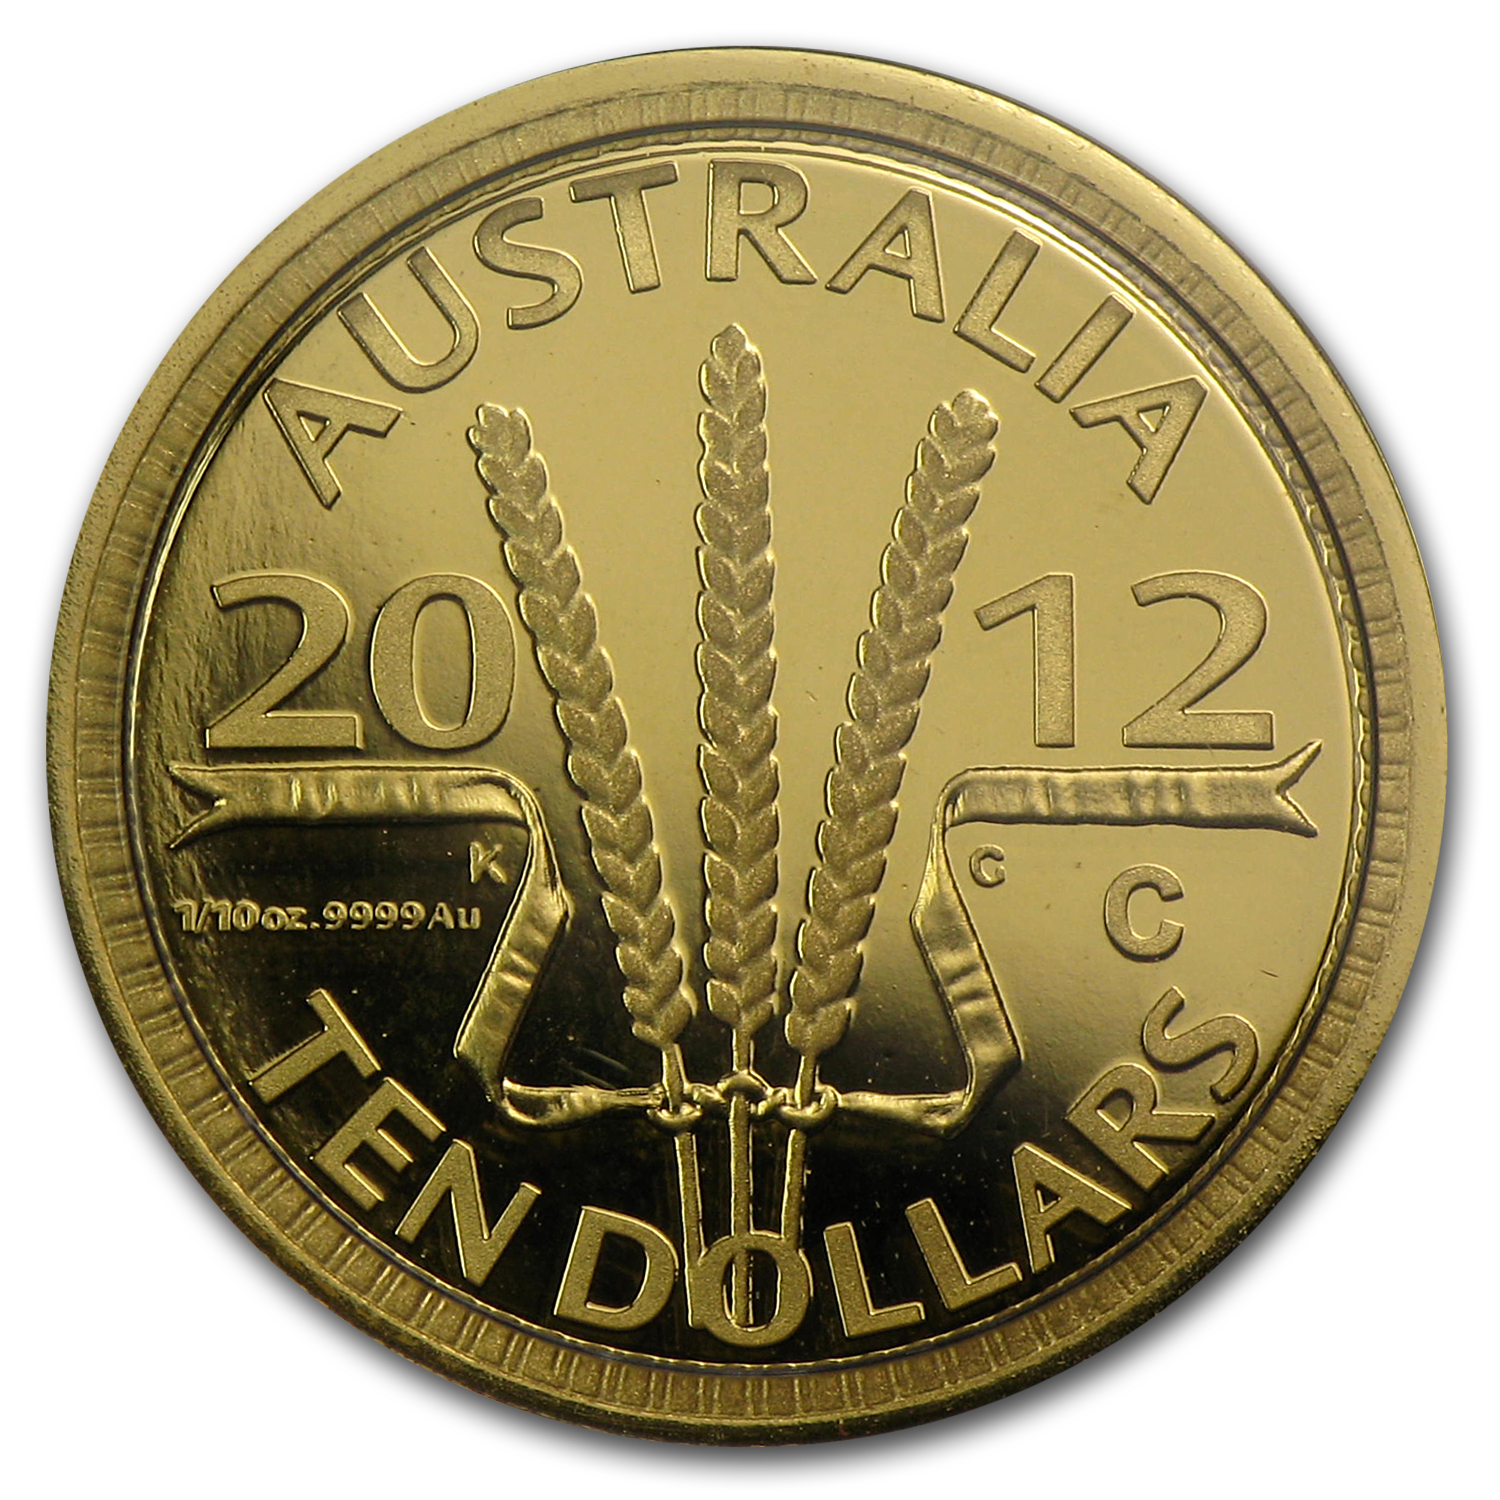 Royal Australian Mint 2012 1/10 oz Gold Proof - Wheat Sheaf